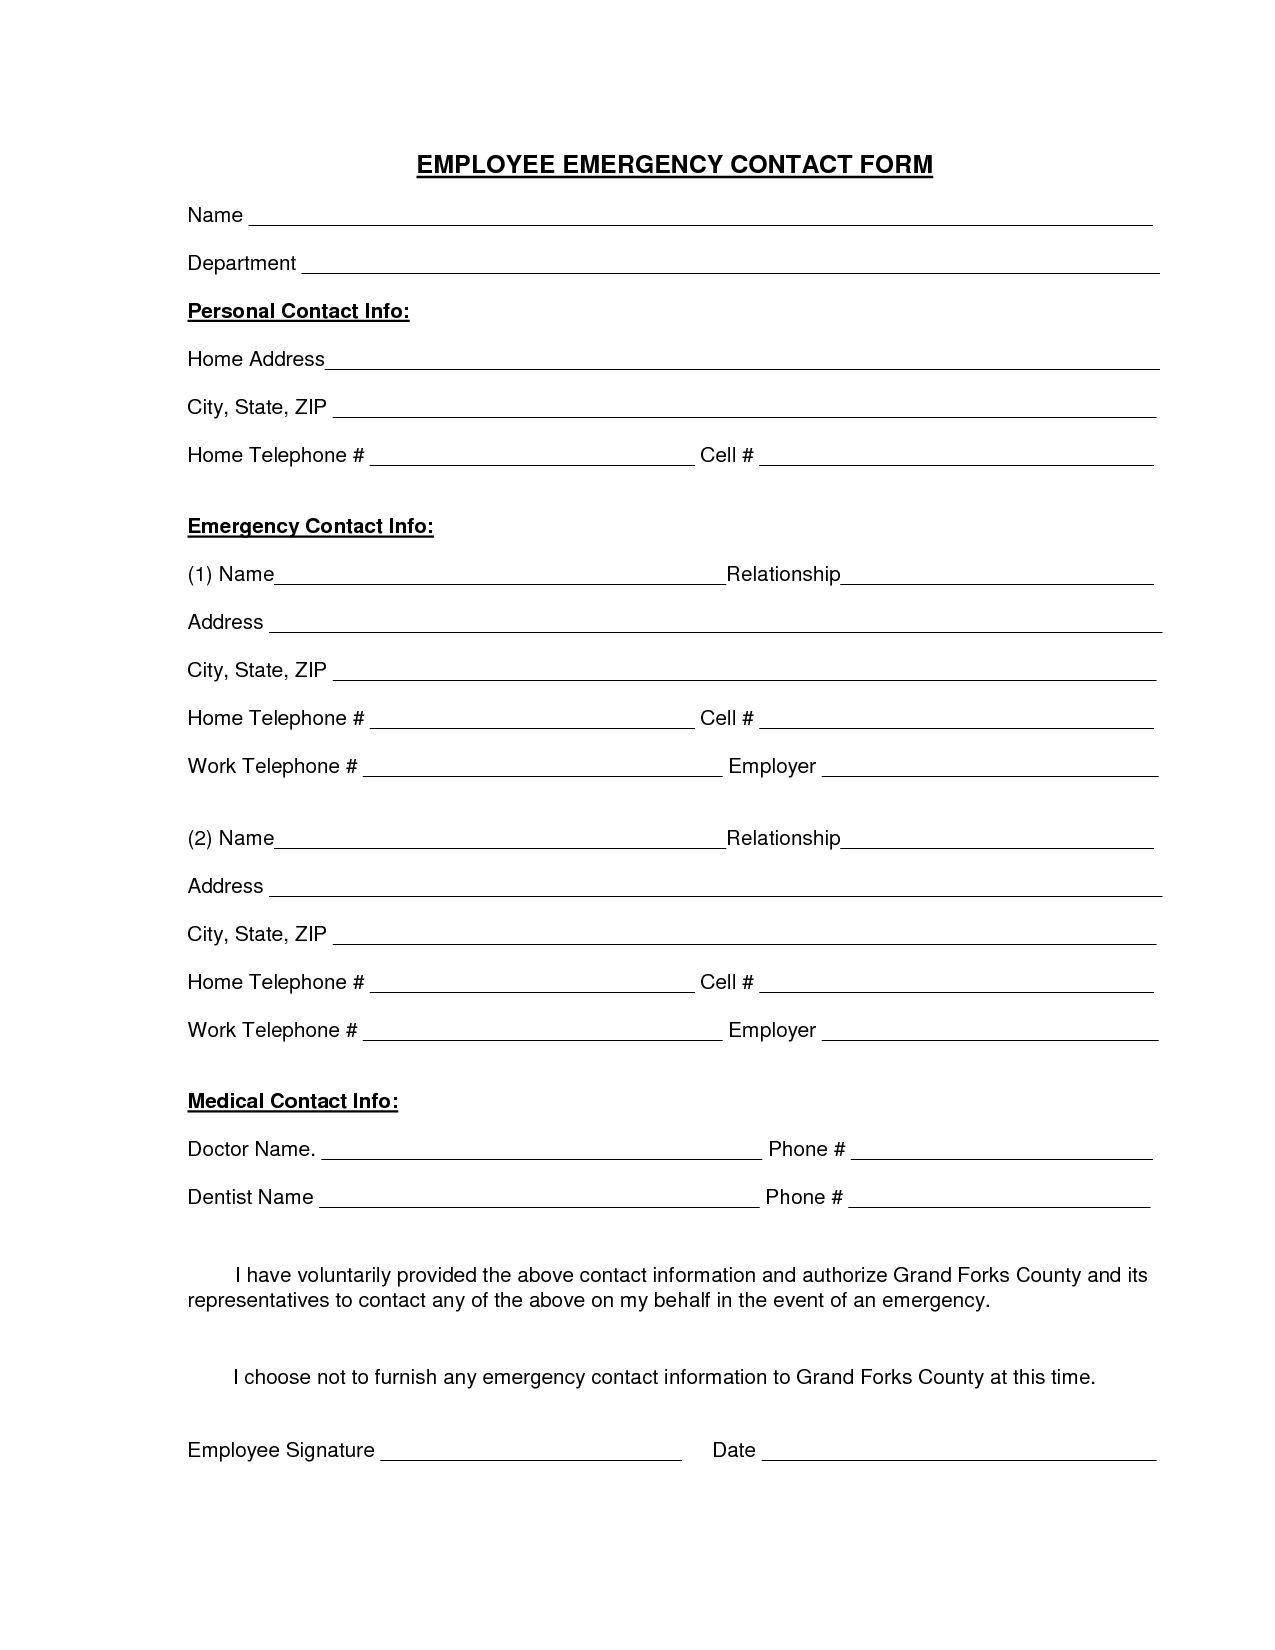 Download A Free Emergency Contact Form And Emergency Card With Emergency Contact Card Template Emergency Contact Form Contact Card Template Emergency Contact